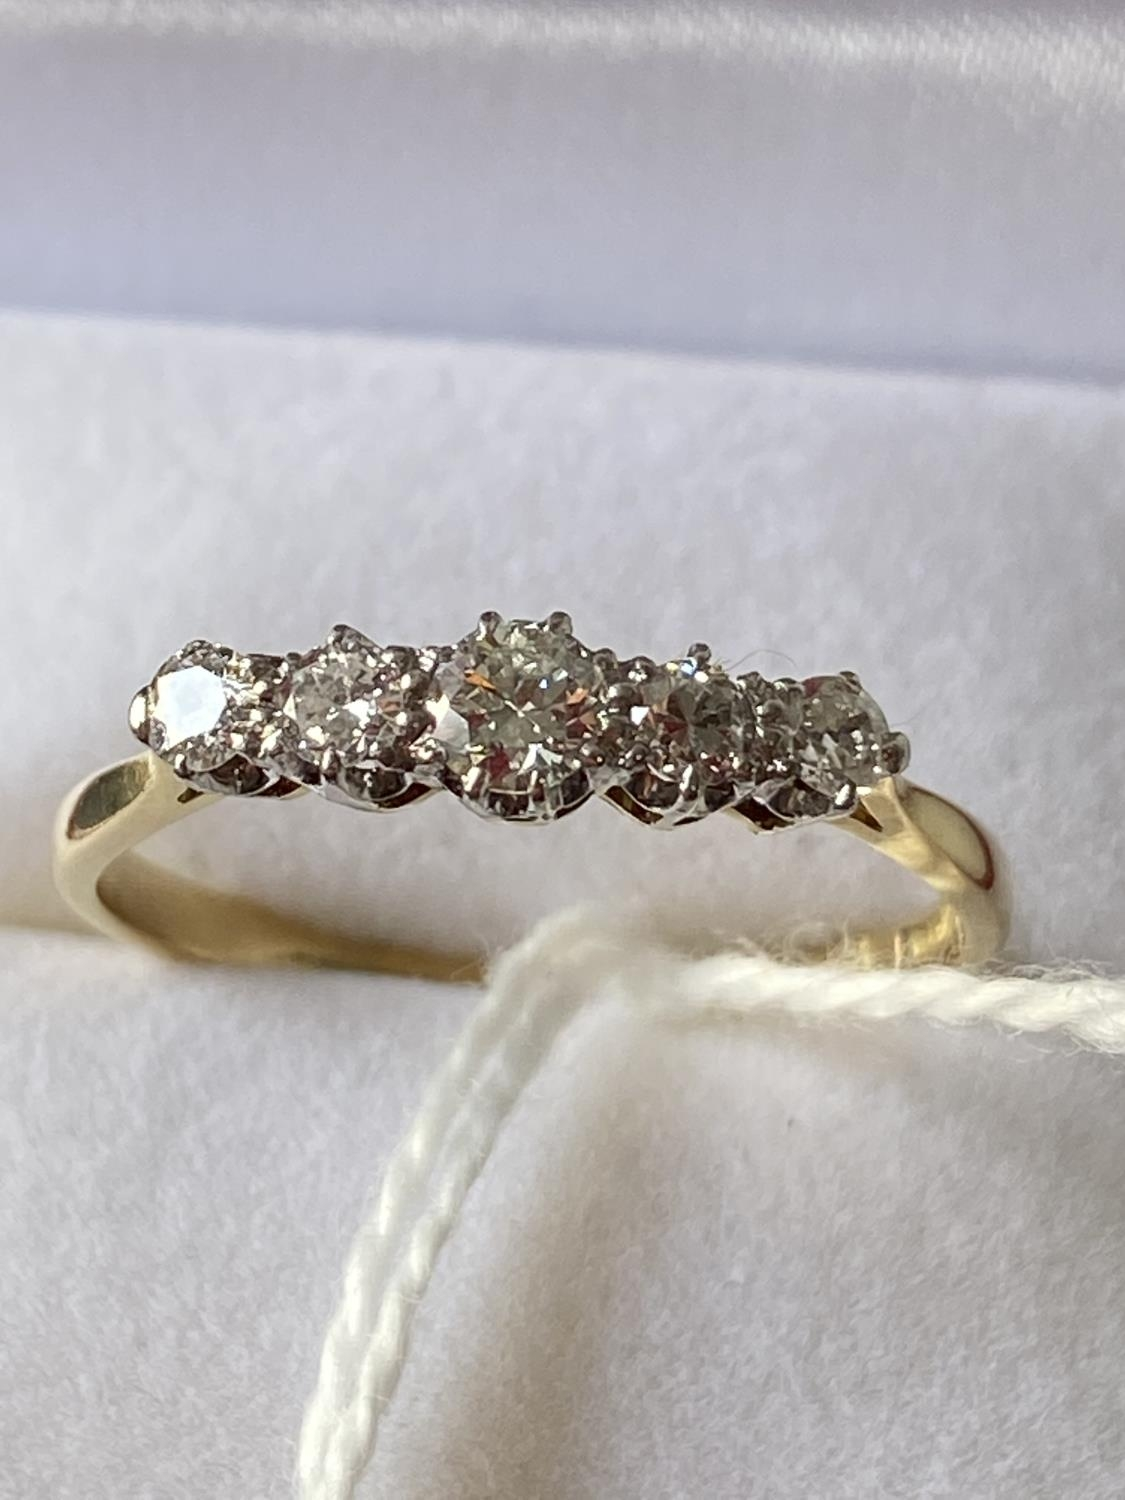 An 18ct gold ladies ring set with 5 brilliant white diamonds [1 inclusion] [size T] [2.73g] - Image 7 of 10